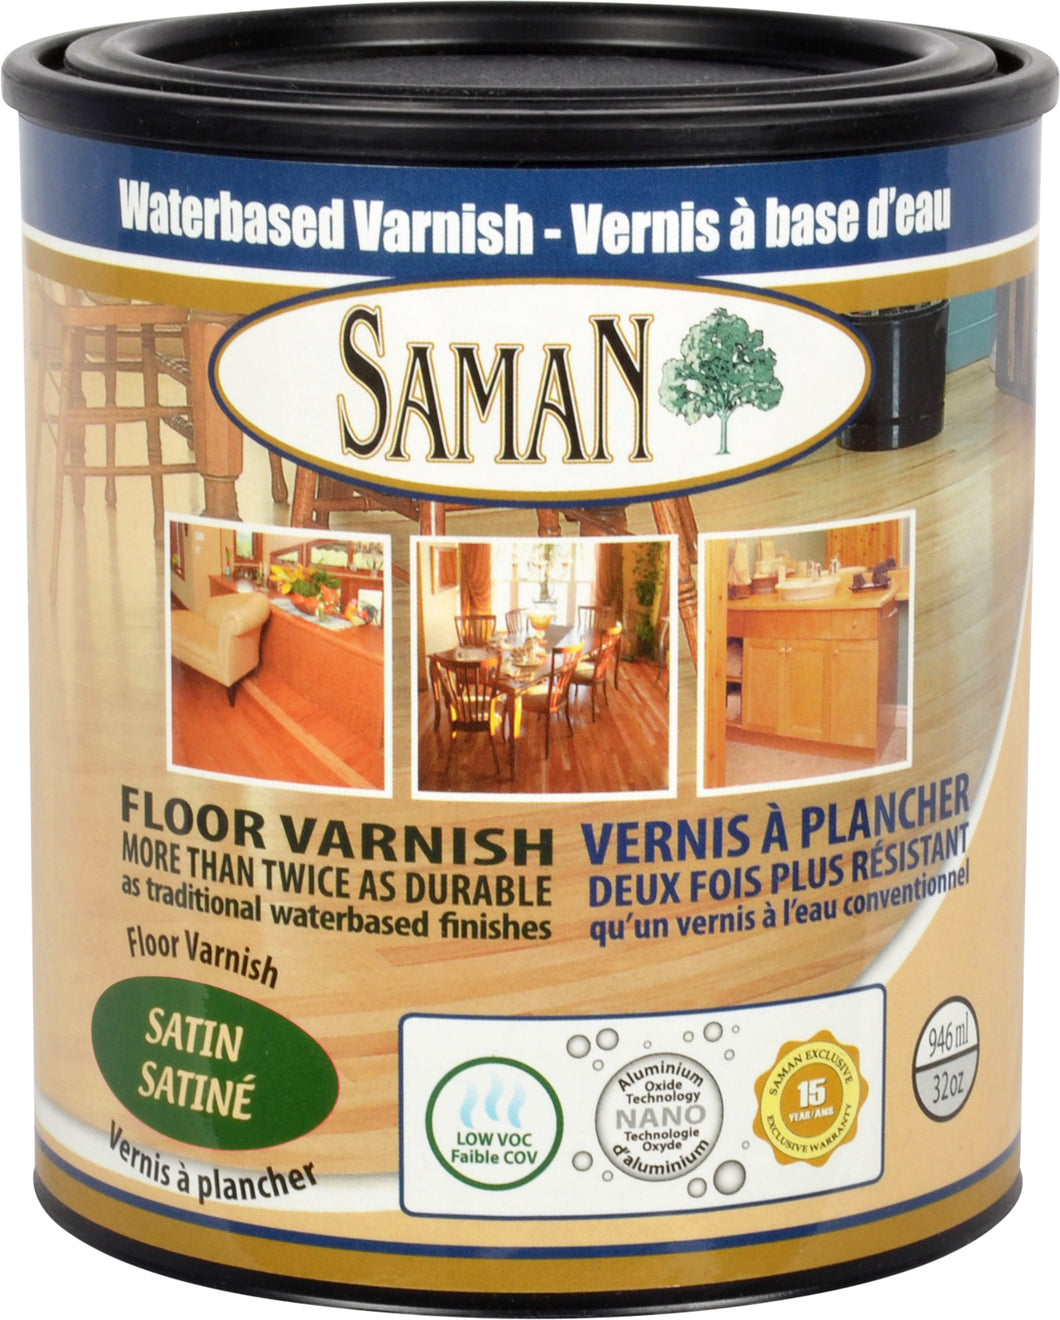 SamaN Interior Waterbased Varnish